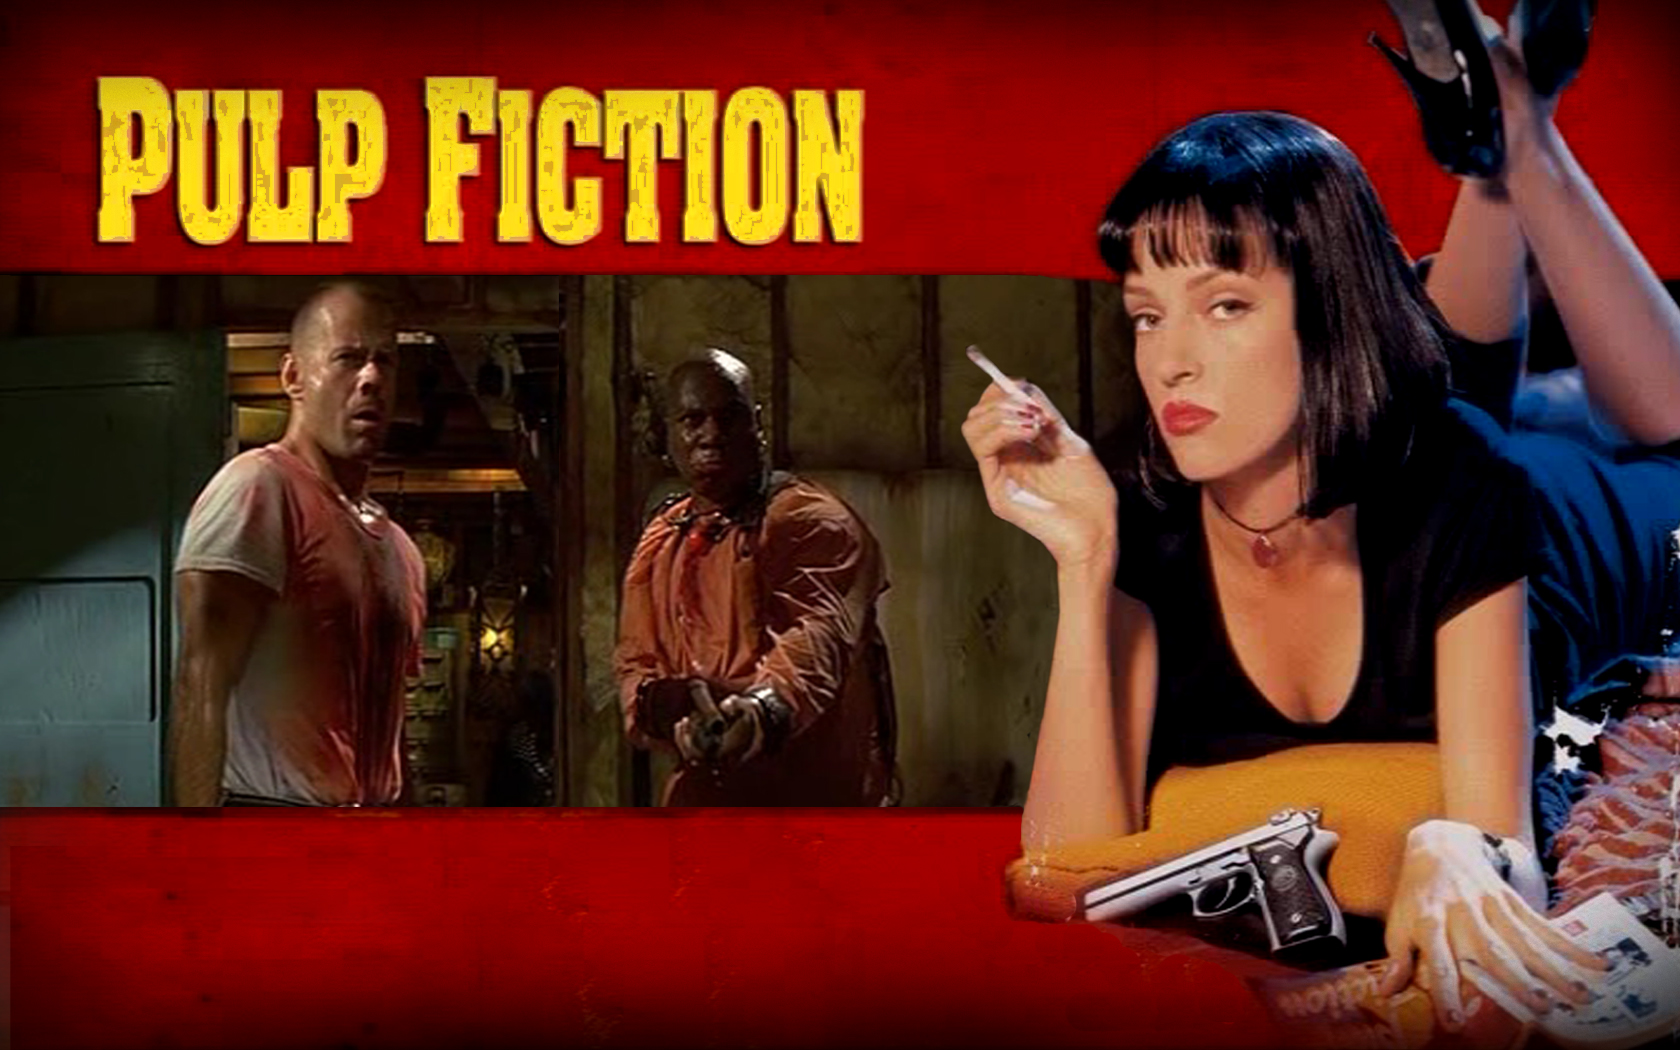 Pulp Fiction é um clássico do cinema anos 90